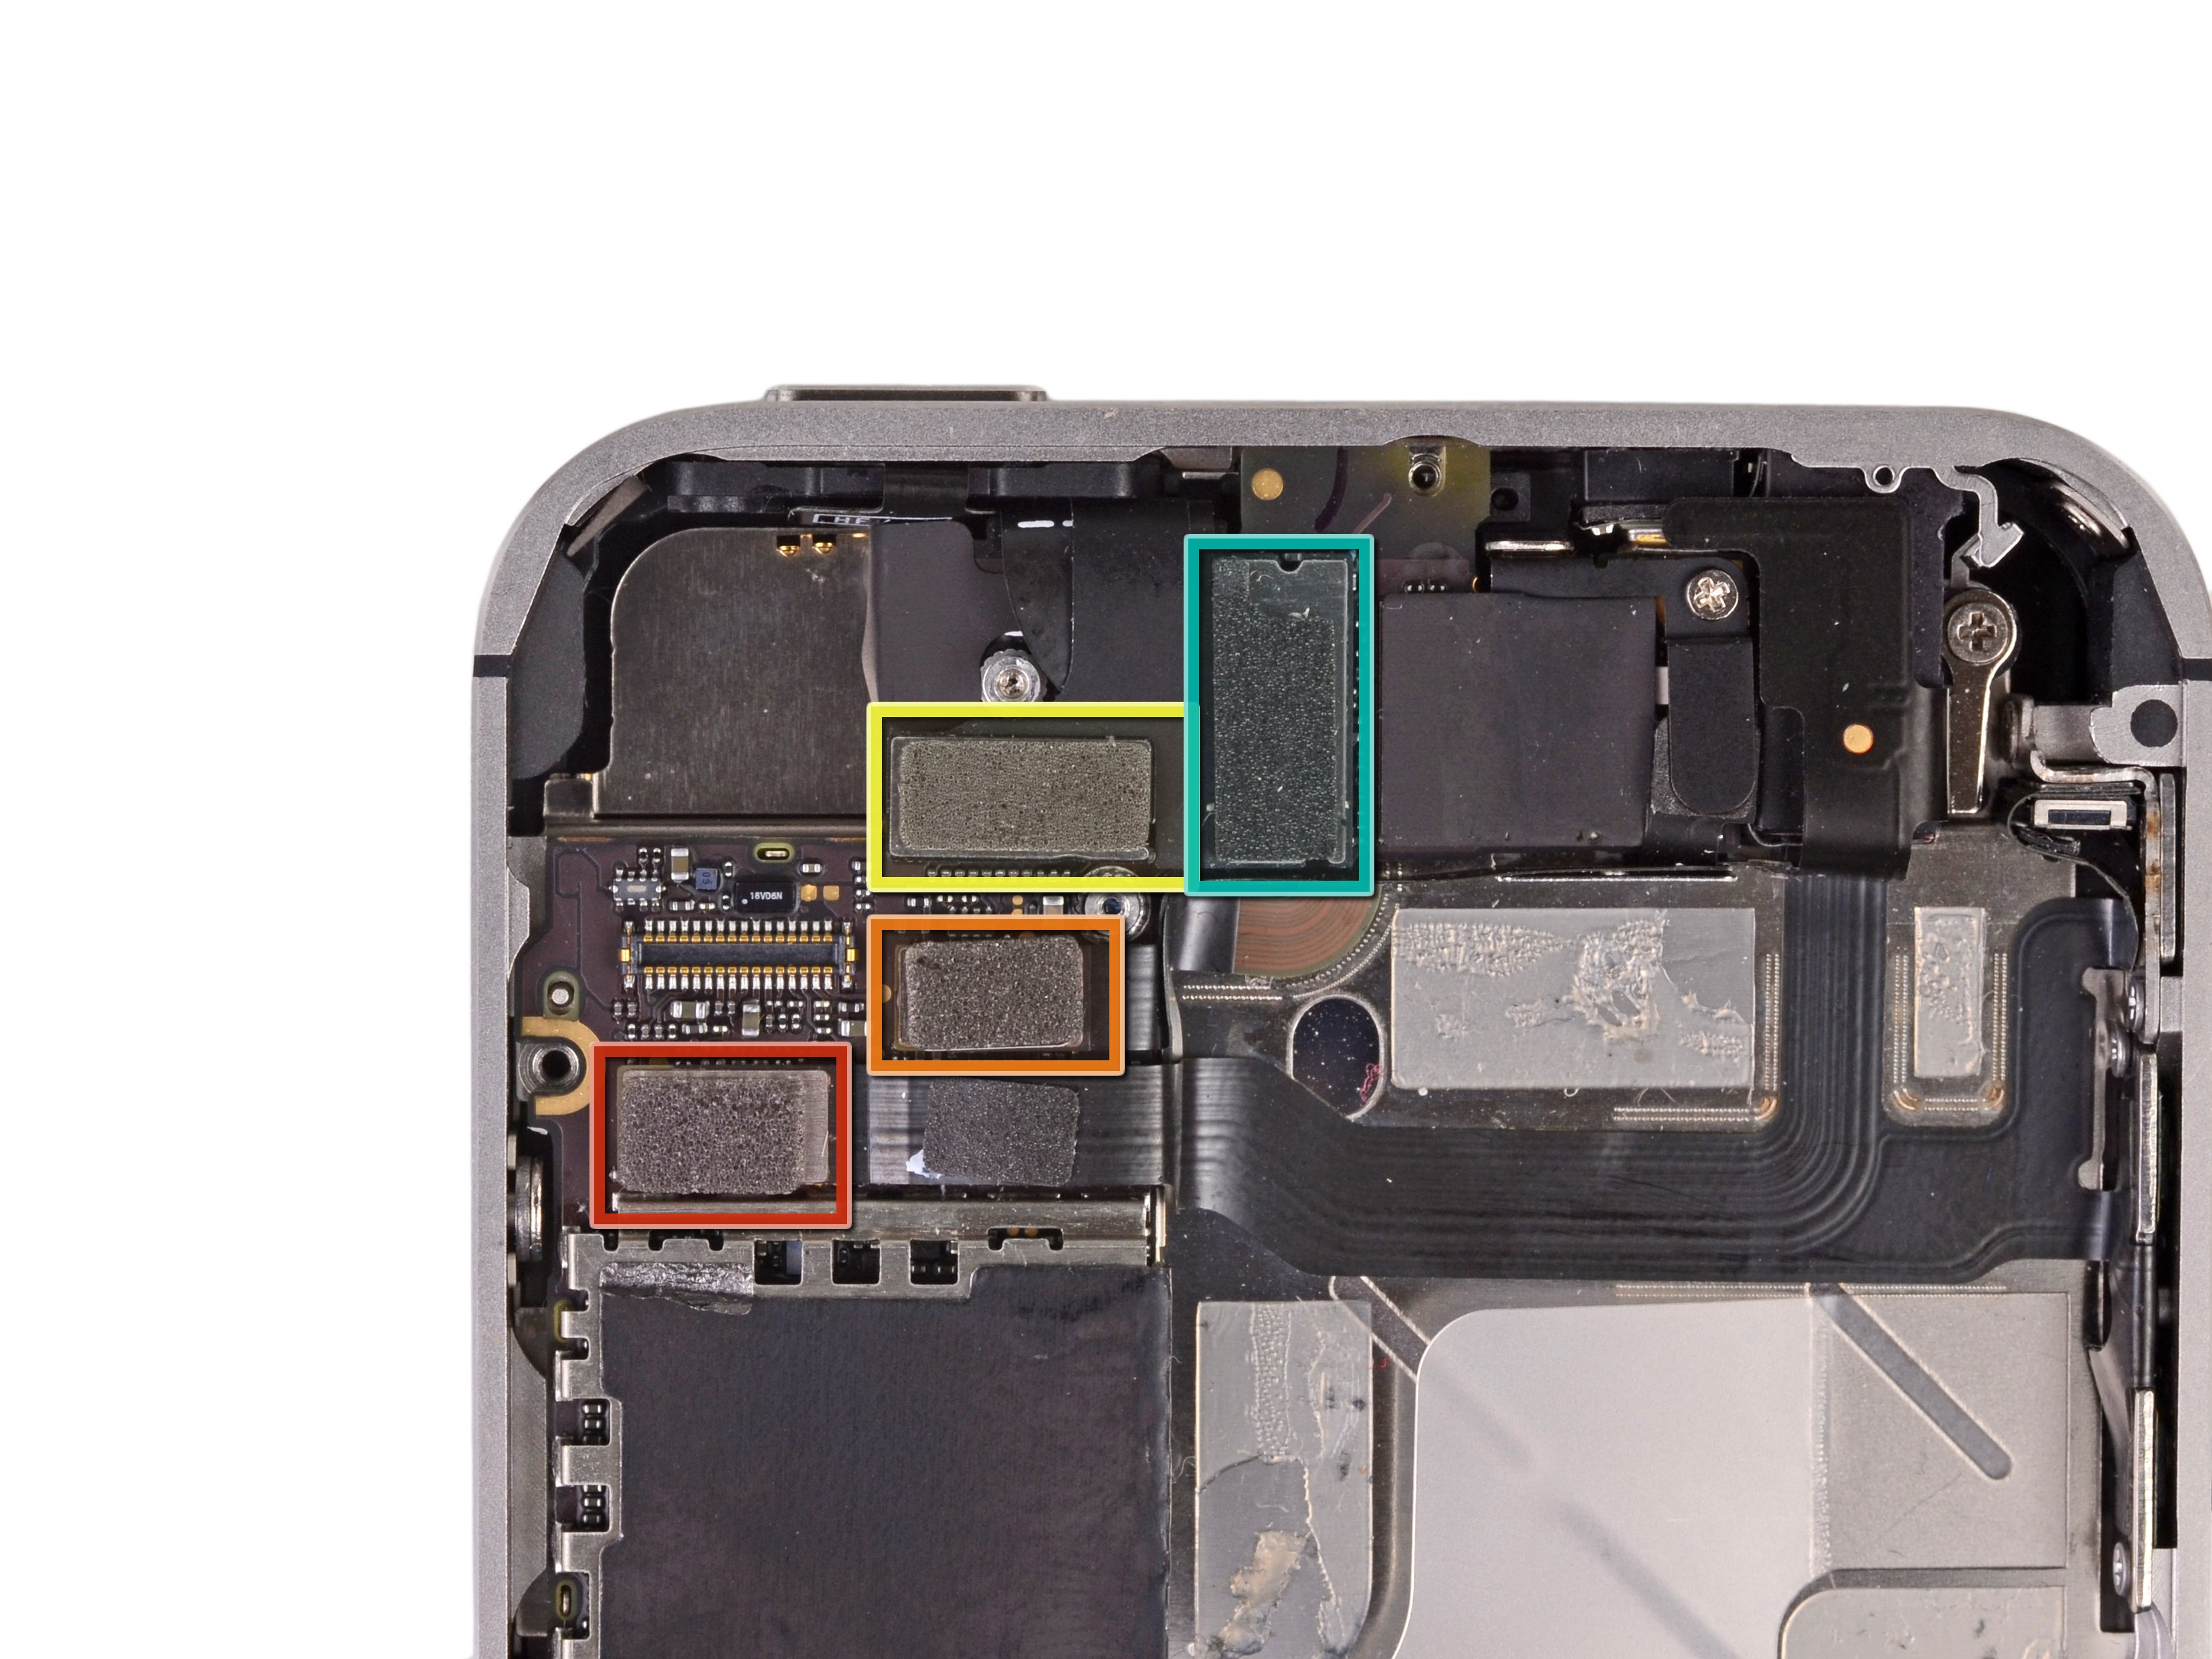 back of iphone 4s diagram 2005 cobalt radio wiring motherboard diagrams schematic logic board replacement ifixit repair guide 3